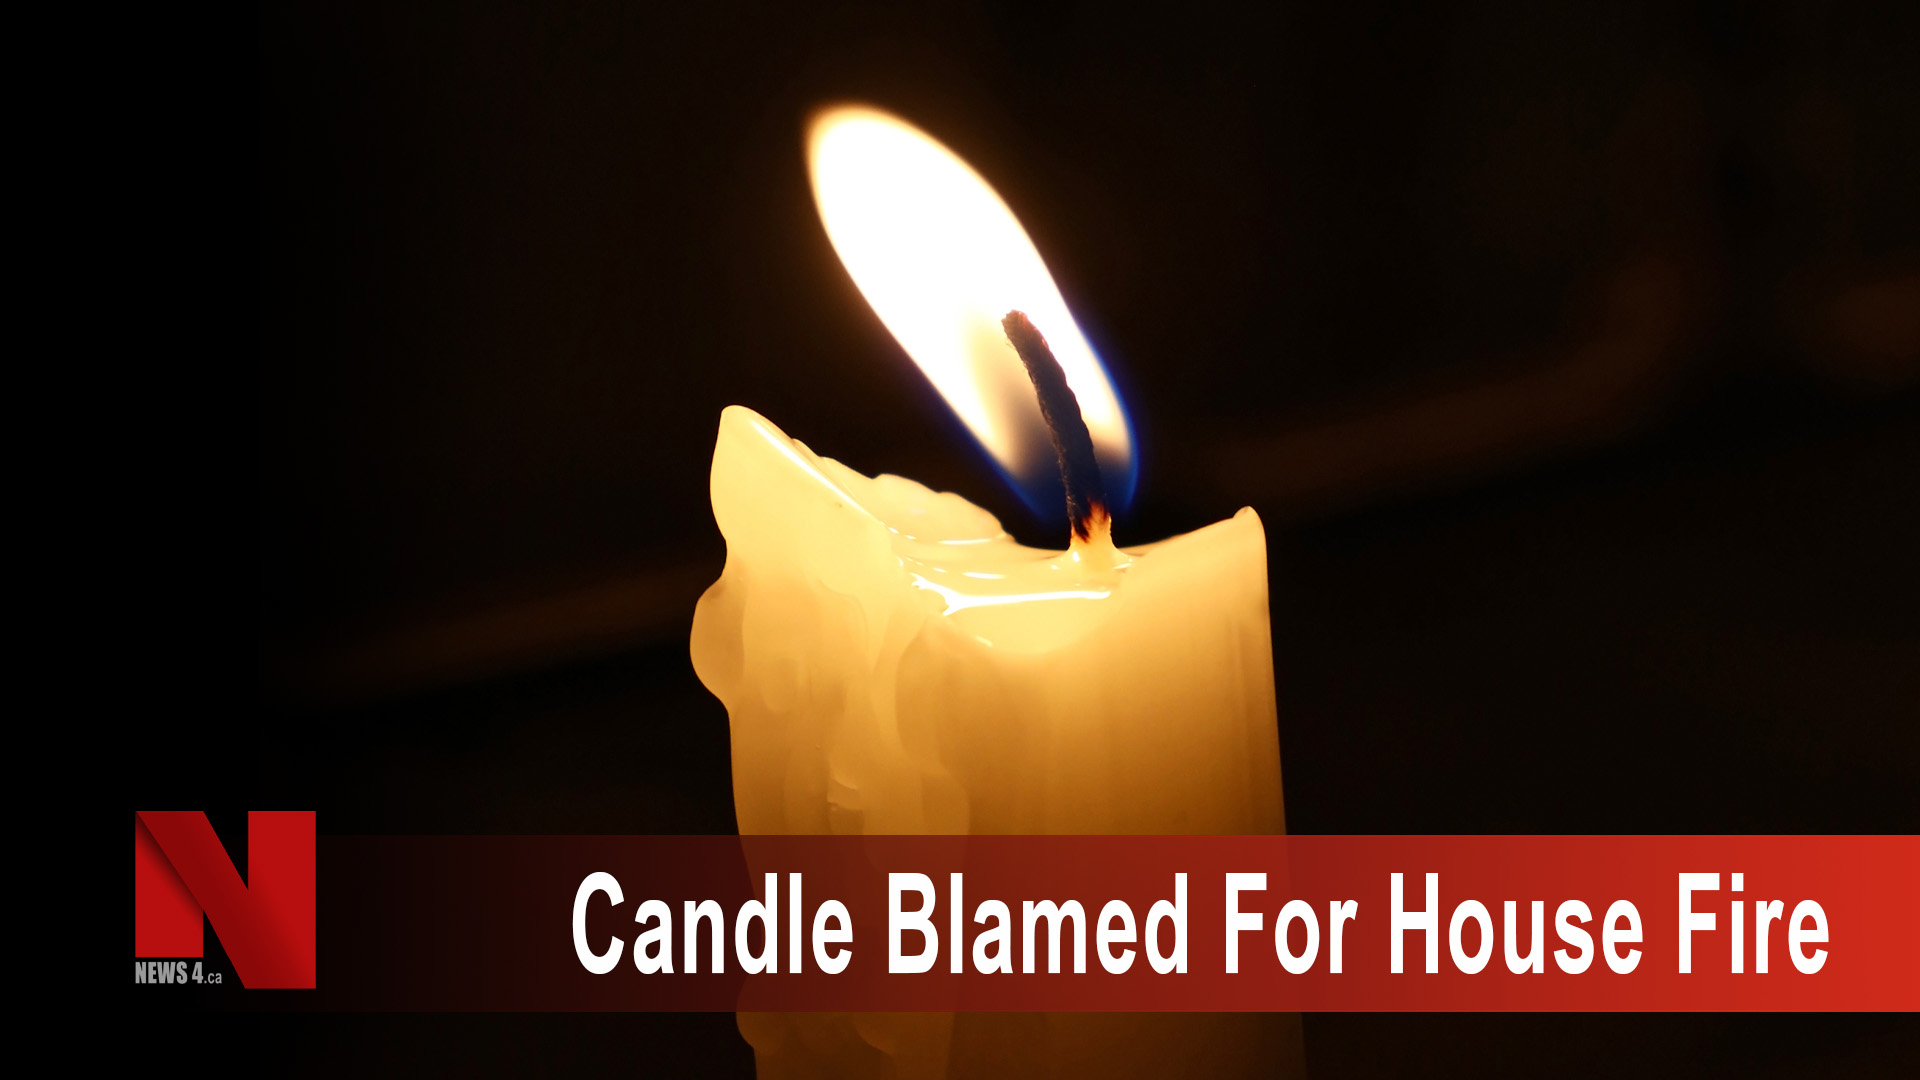 Candle blamed for house fire